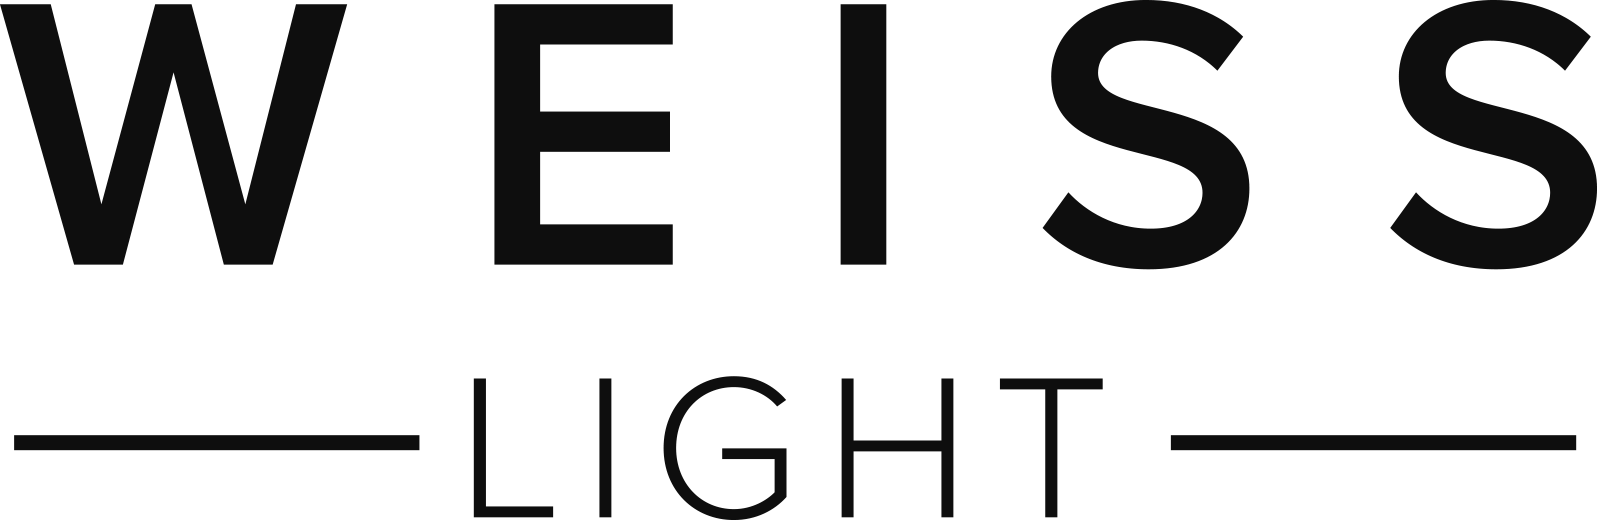 Weiss Light E-Shop